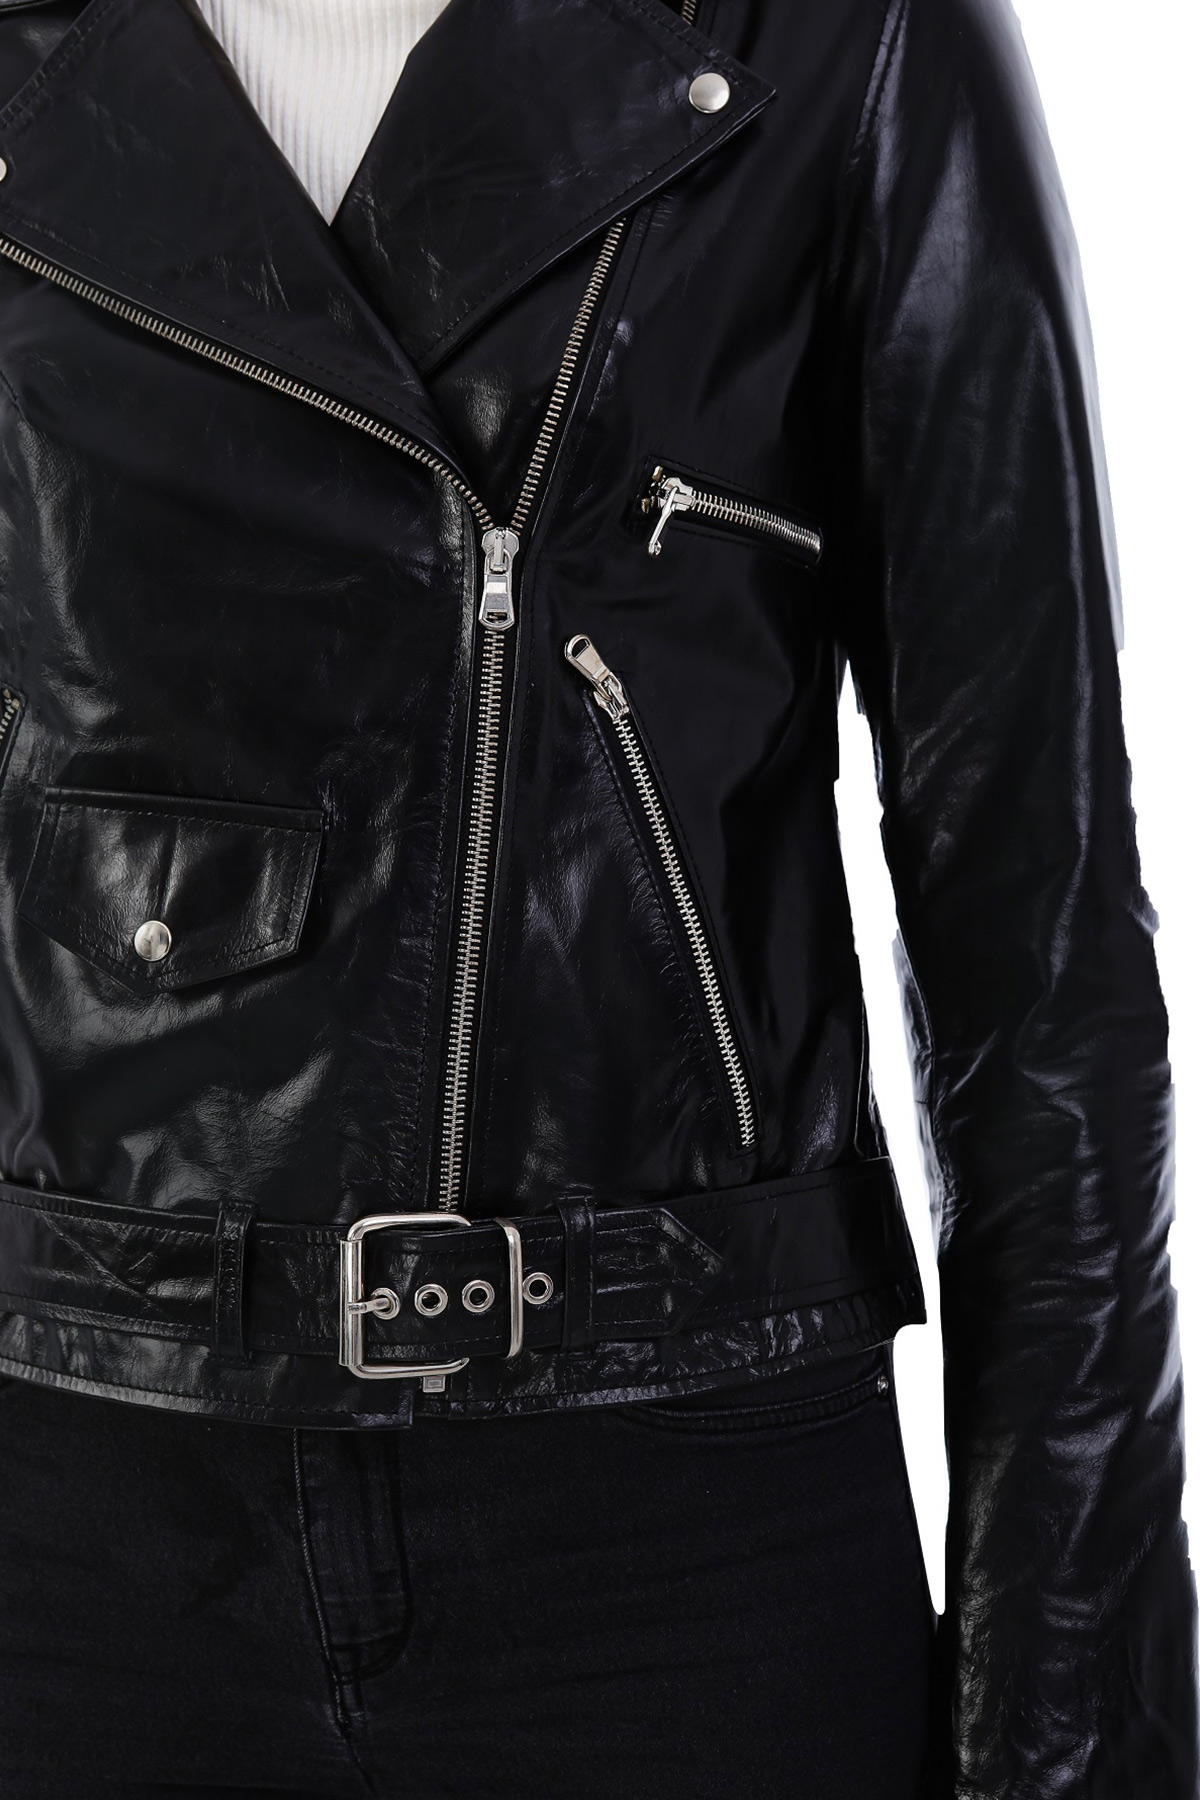 Dunhill Leather Jacket For Sale